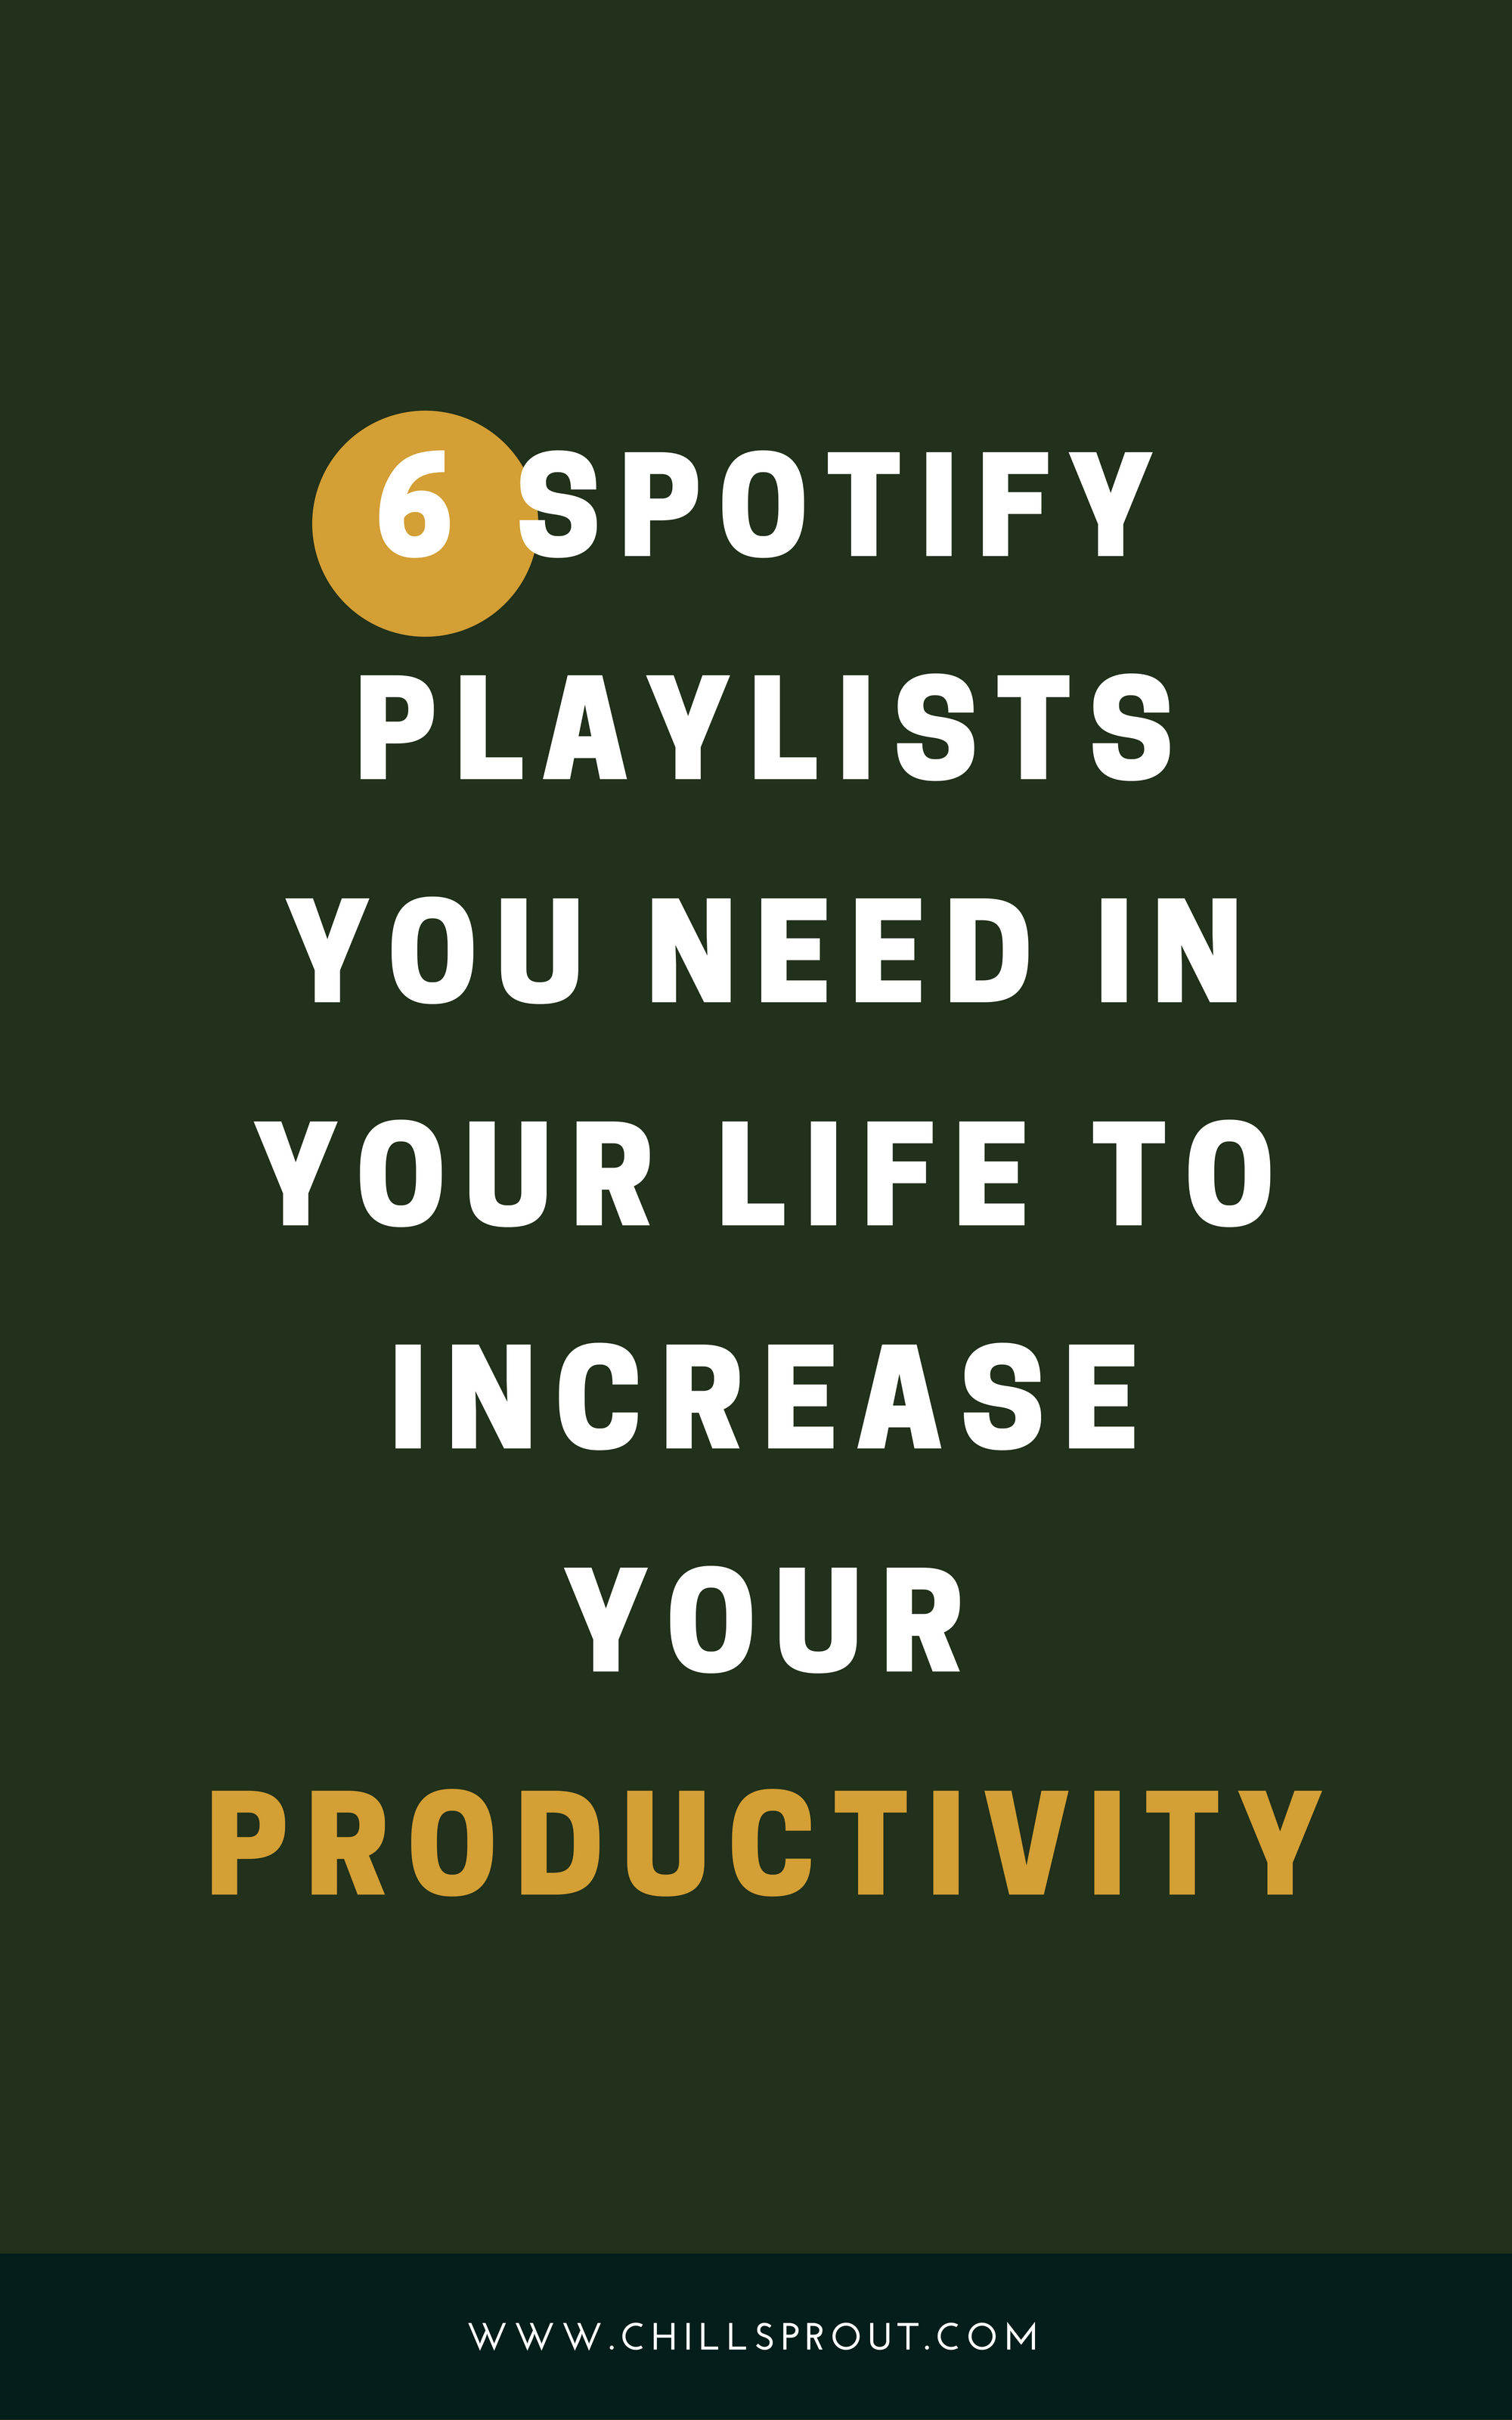 Spotify Playlists You Need In Your Life To Increase Your